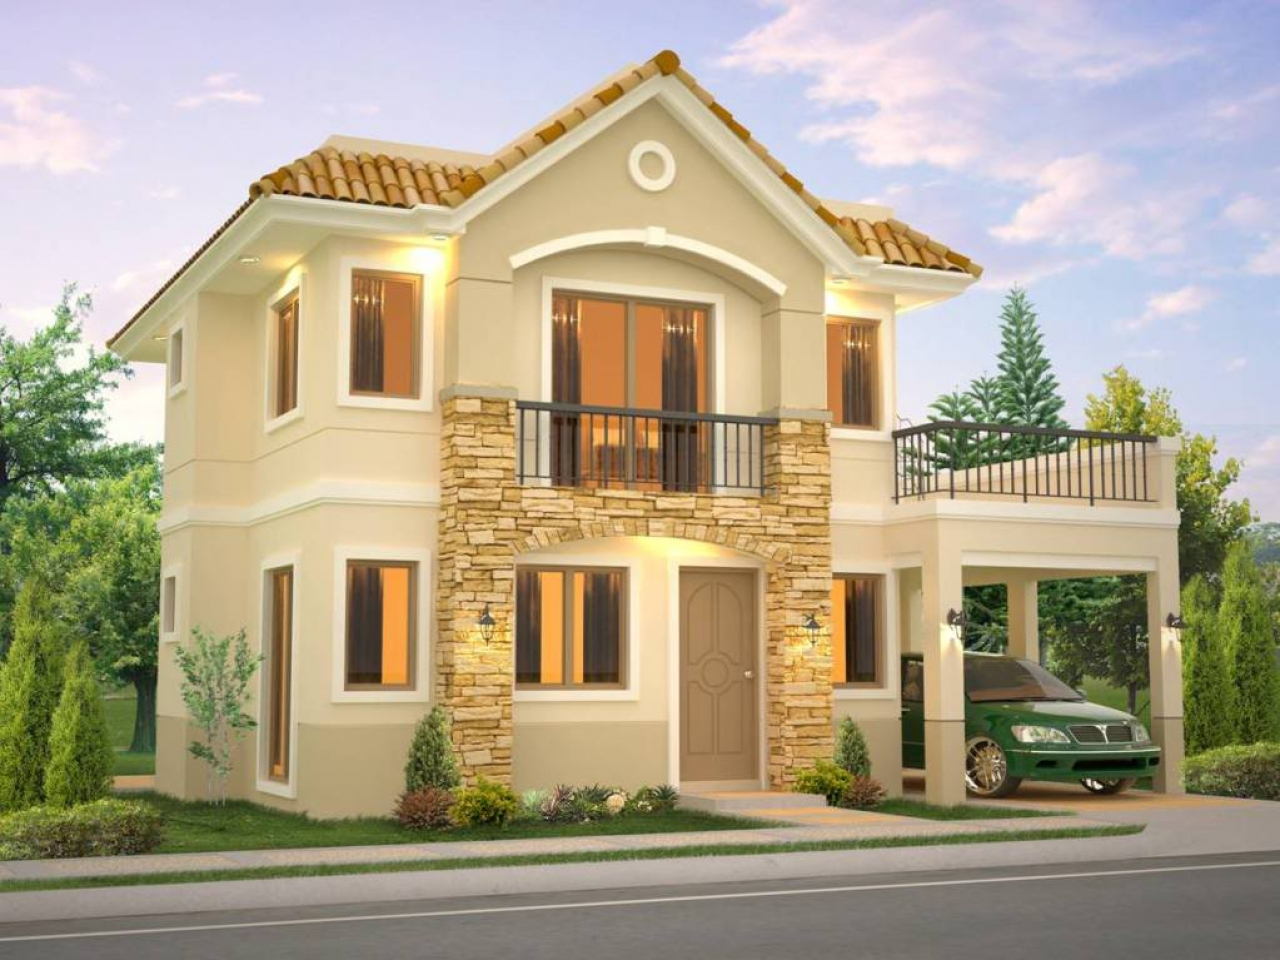 New Home Designs Latest Beautiful Latest Modern Home: New Model House In Philippines Model Design House